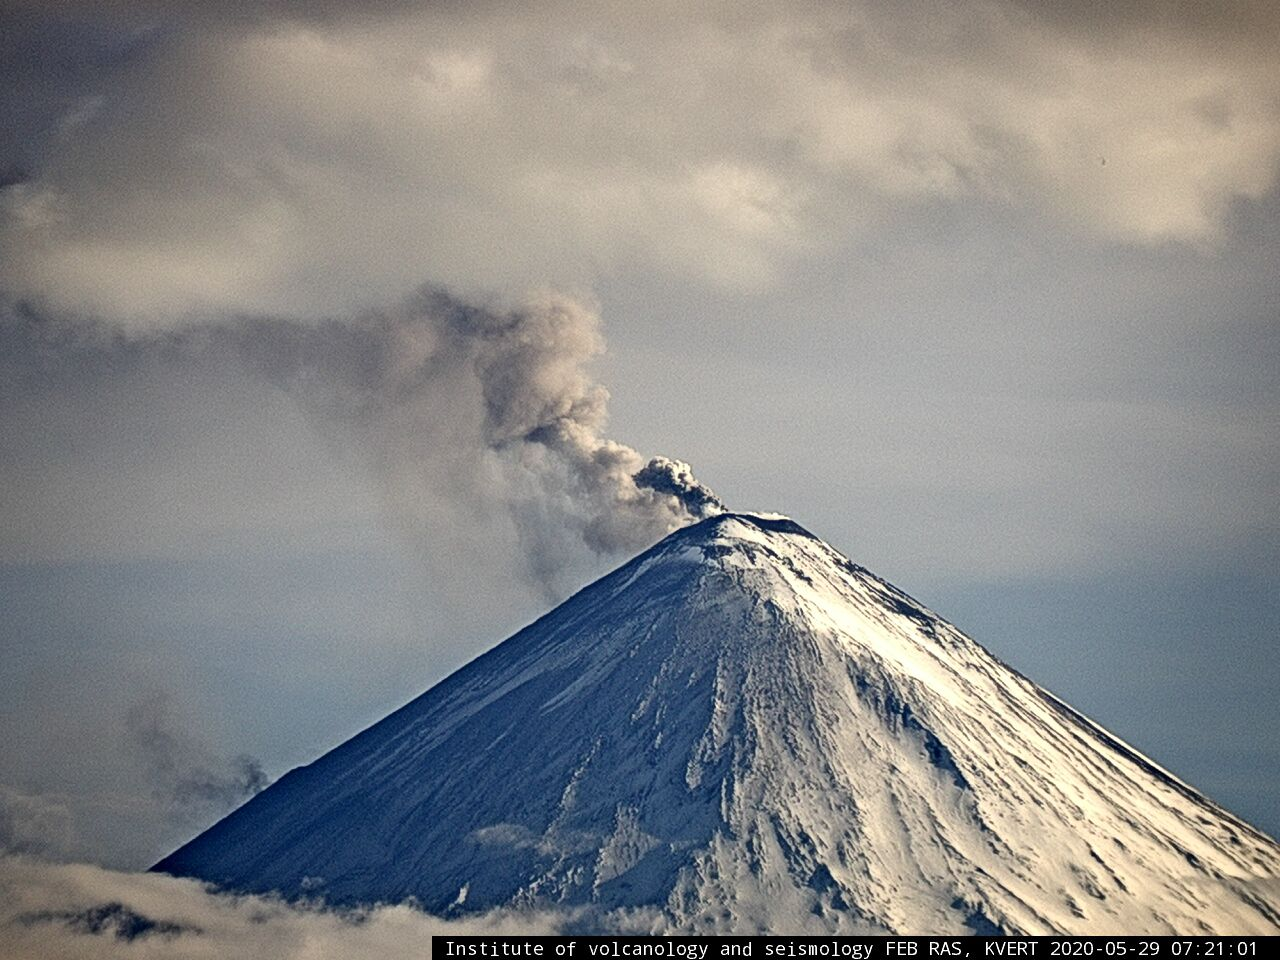 Klyuchevskoy - 29.05.2020 / 07h21 Seen by F.Yu. Levinson-Lessing Kamchatkan Volcanological Station (Klyuchi village) - IVS FEB webcam RAS KVERT